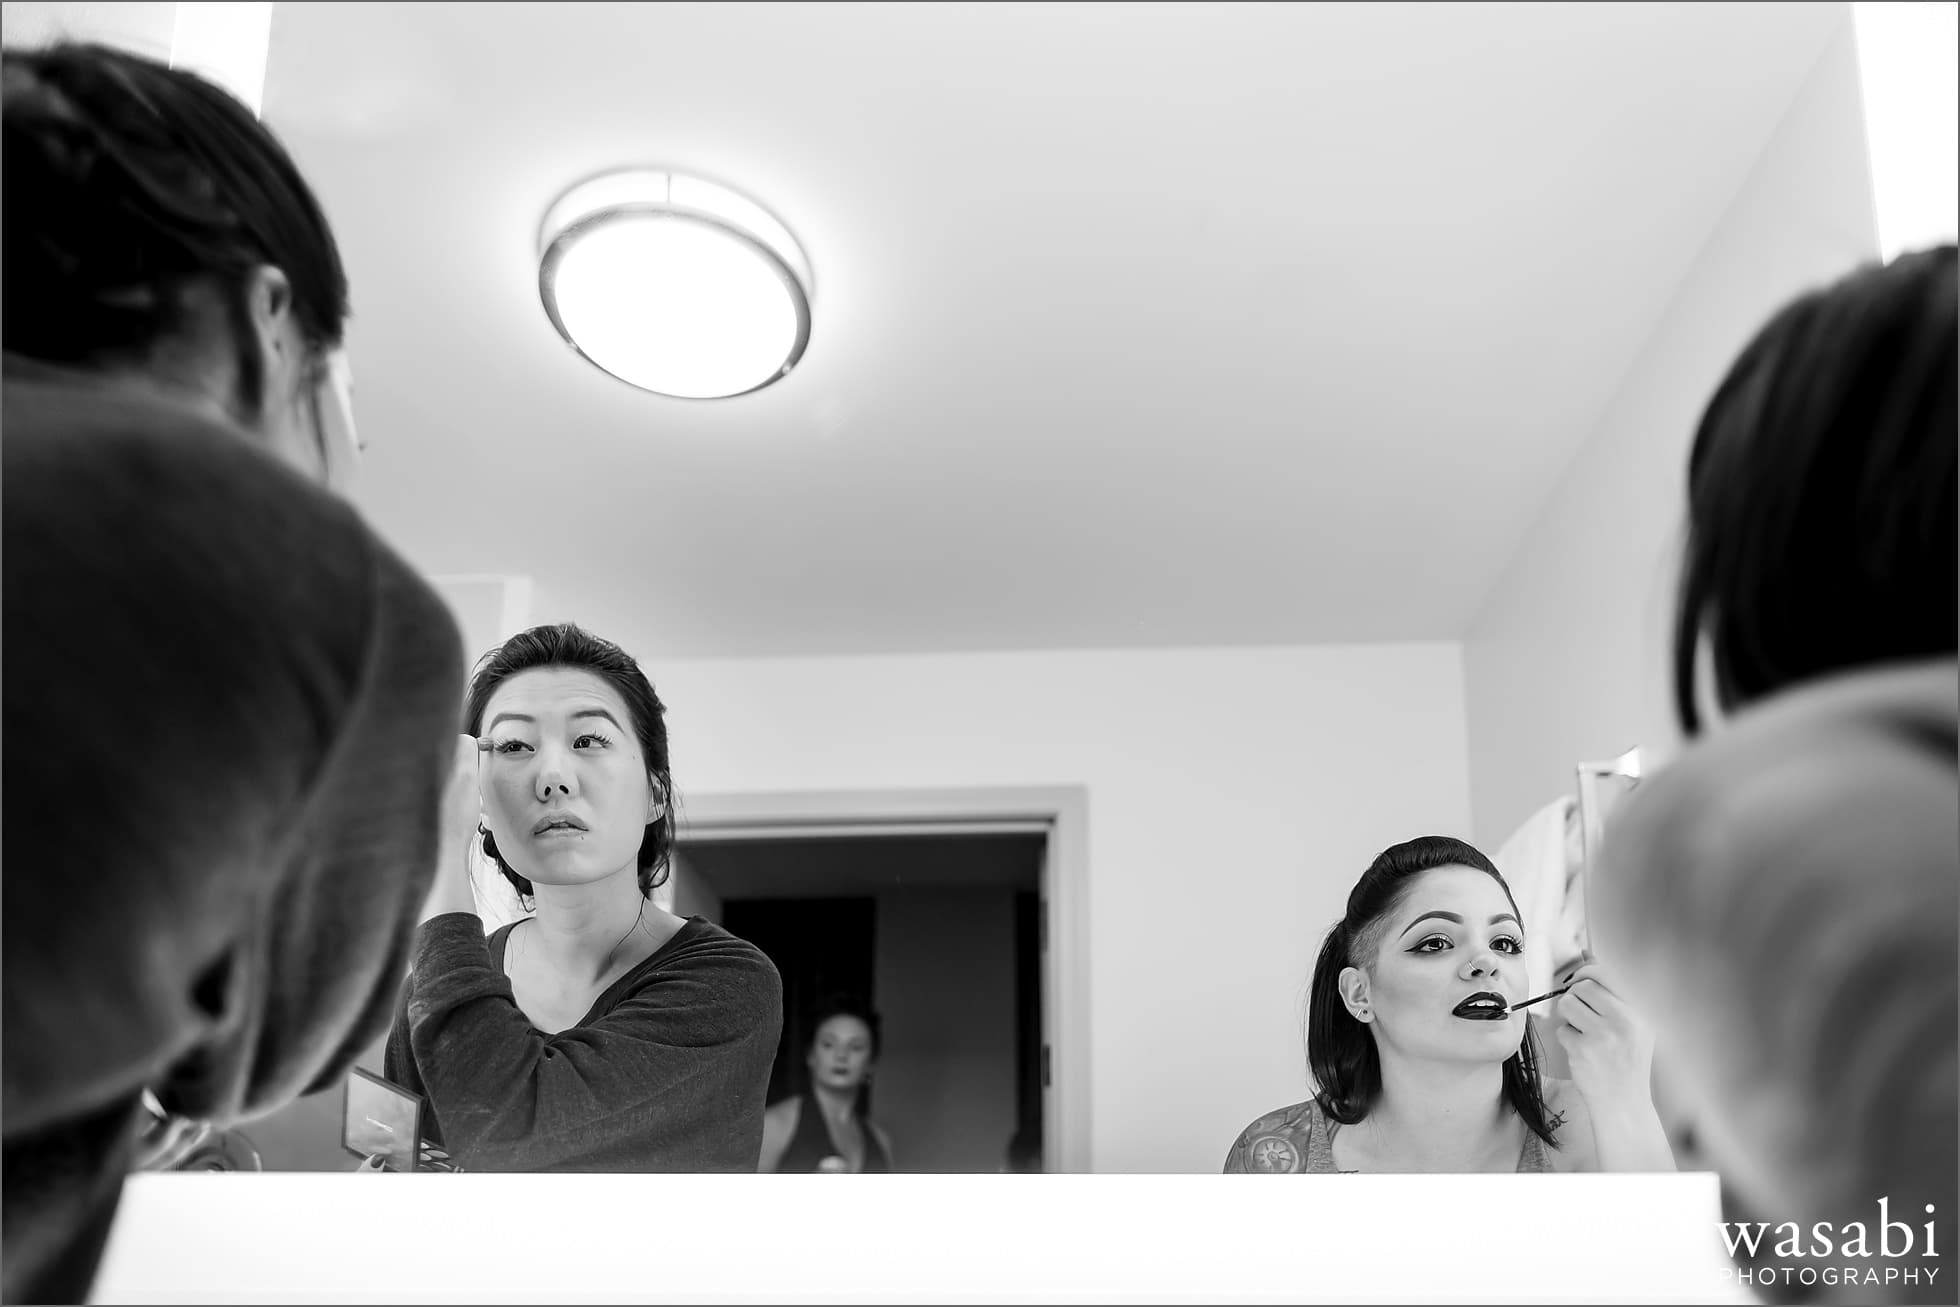 bridesmaids put on makeup in the bathroom mirror while getting ready at La Quinta Inn in downtown Chicago for a wedding